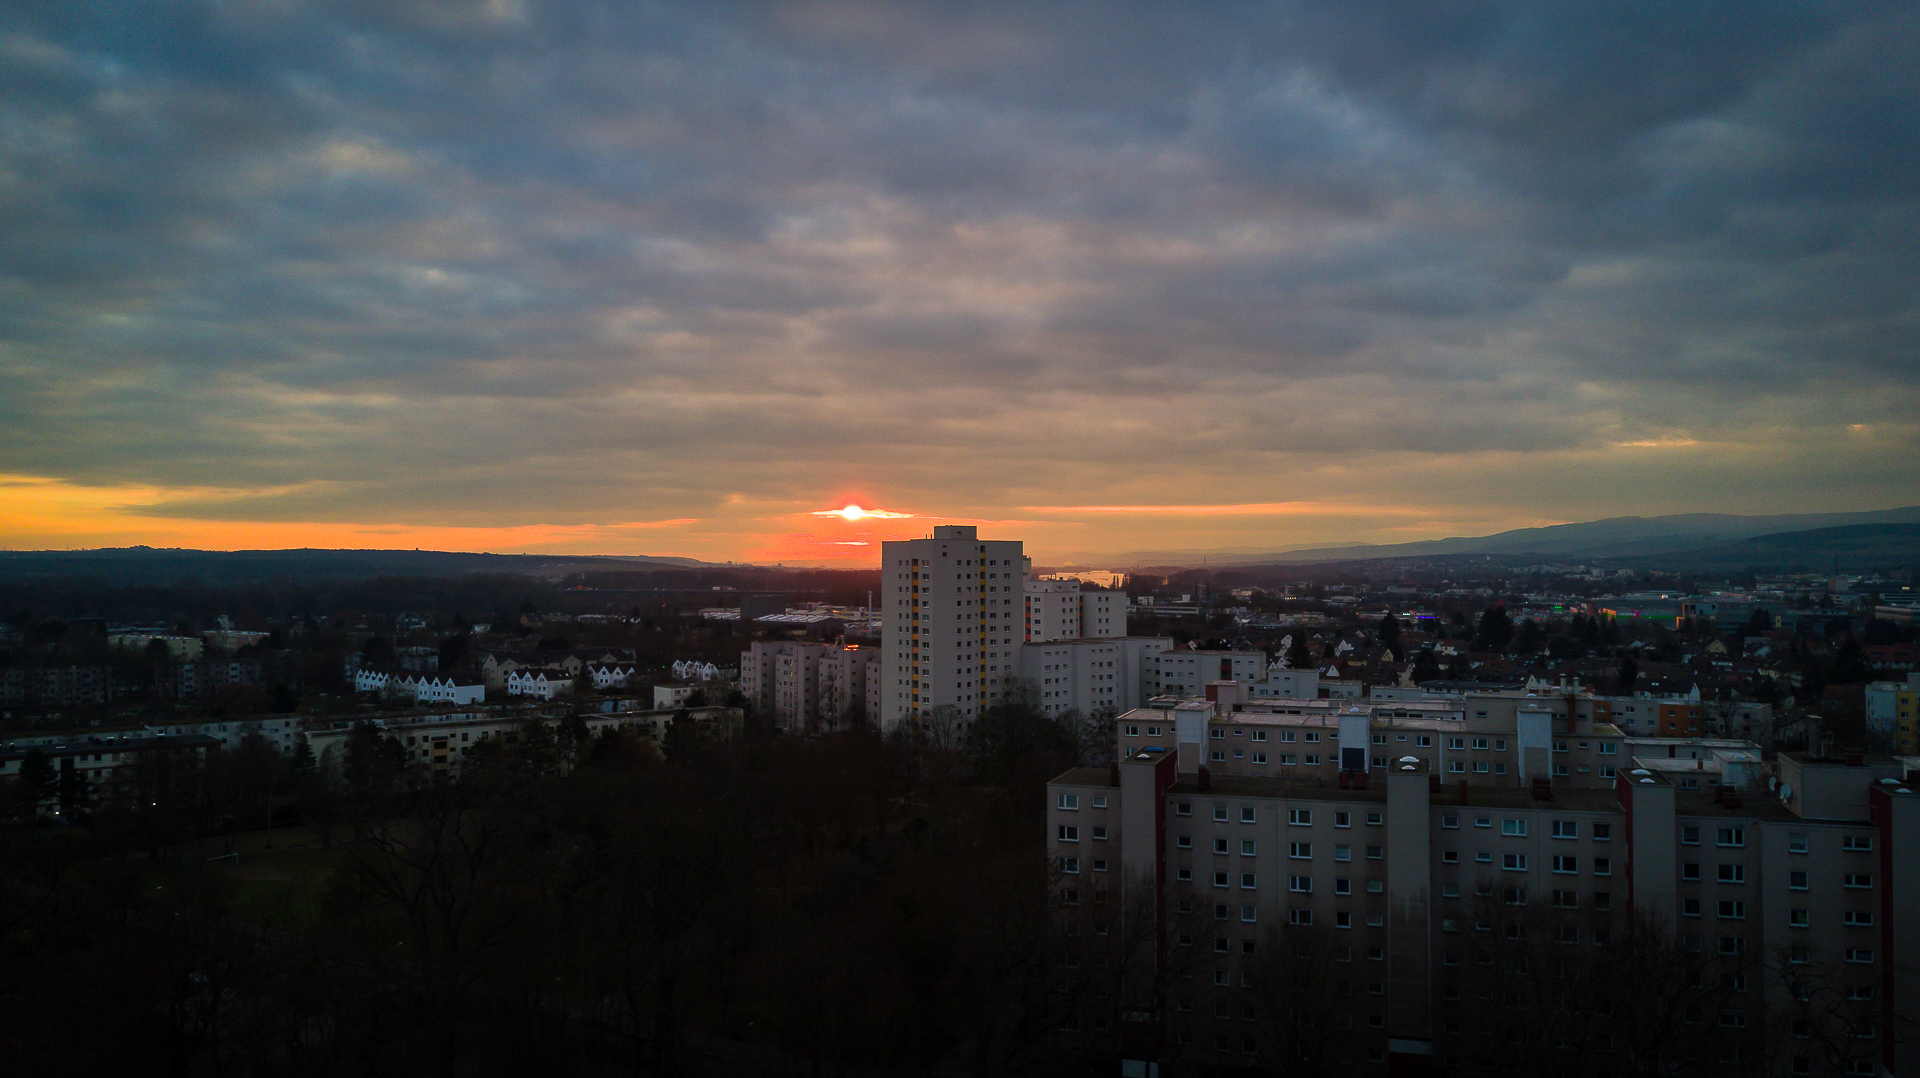 Sunset behind the City